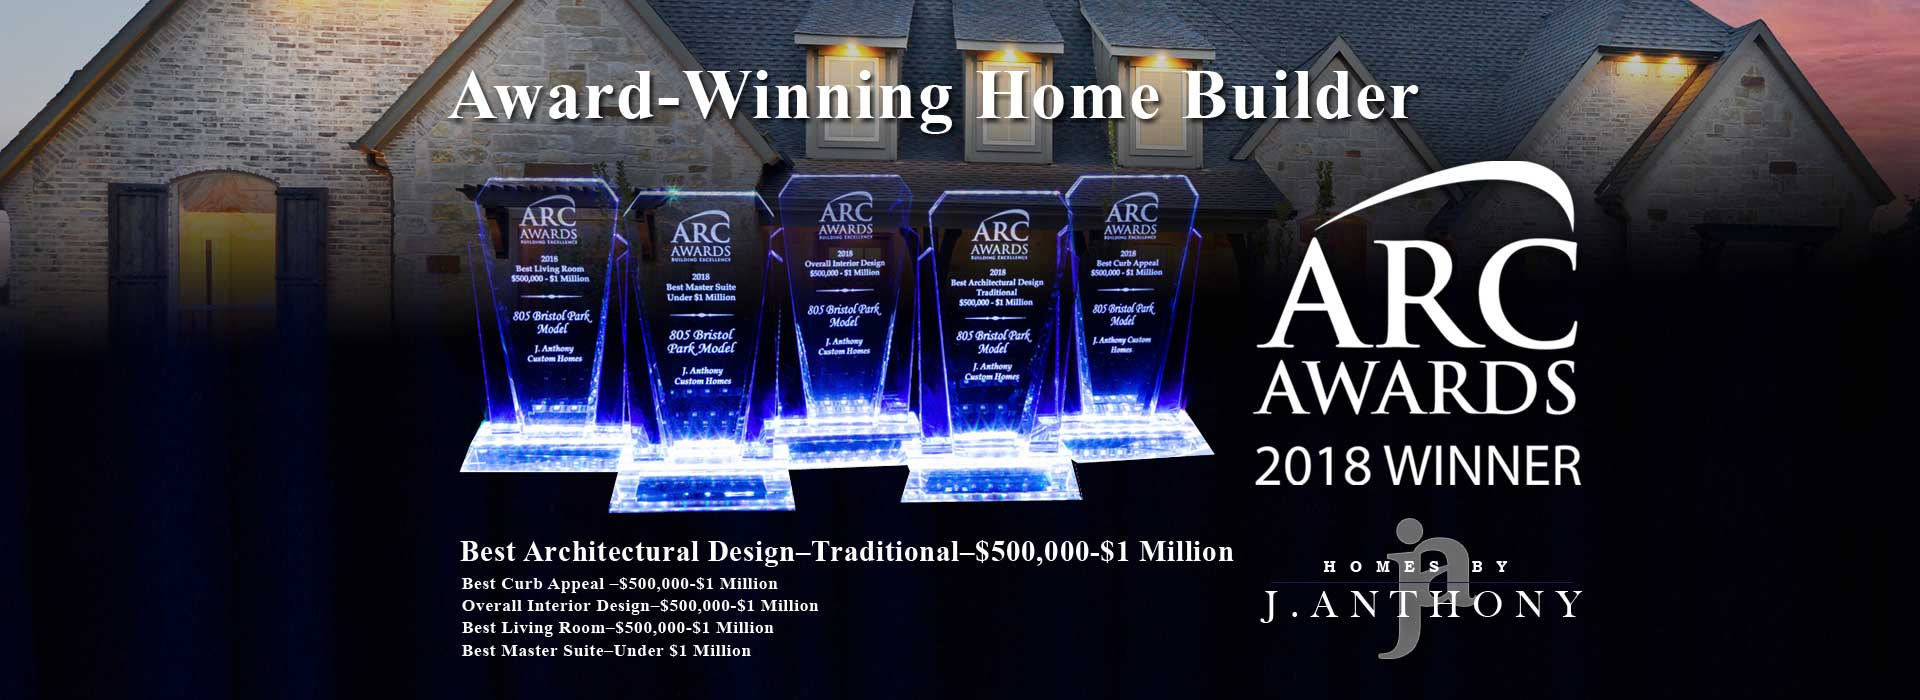 Homes By J  Anthony – North Texas Award-Winning Custom Home Builder